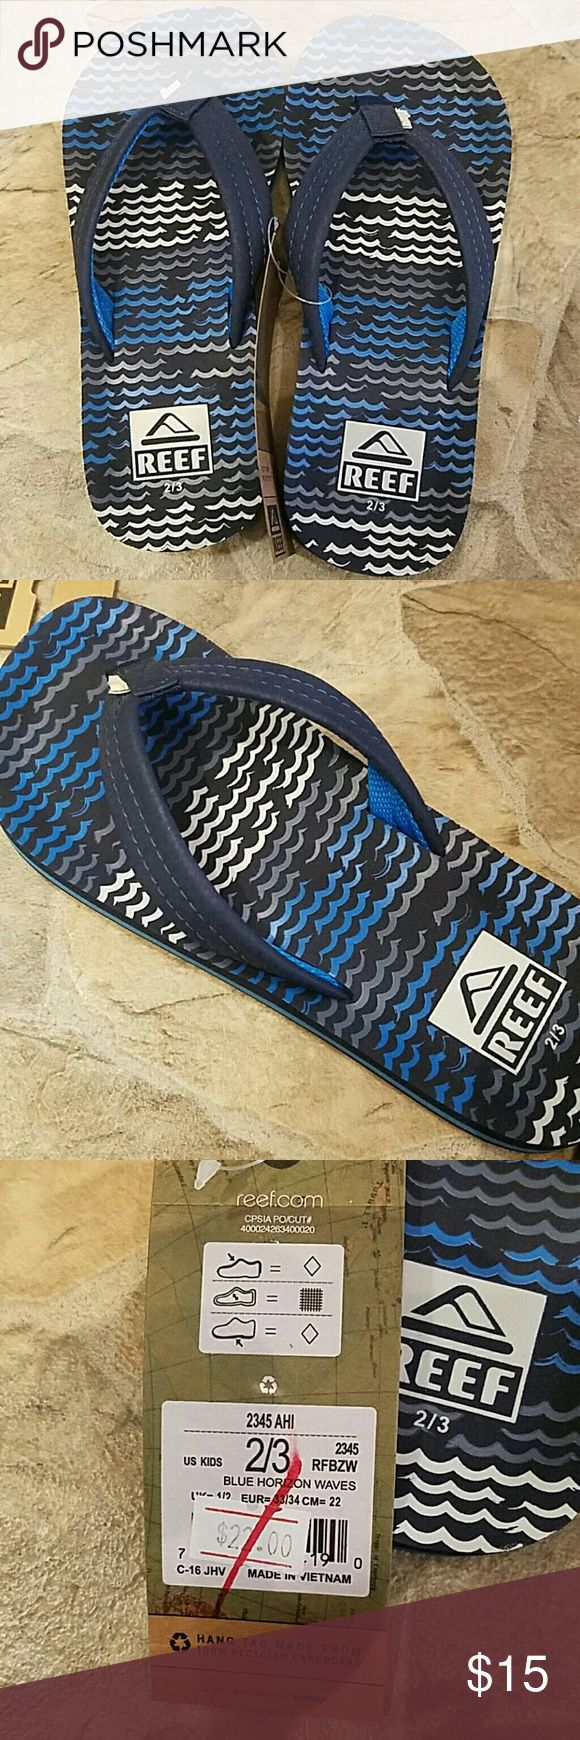 Ahi flip-flops. Kids reef flip-flops. Blue, gray, and white colored. Never been worn! New with tags! All offers considered and please feel free to ask questions. Reef Shoes Sandals & Flip Flops